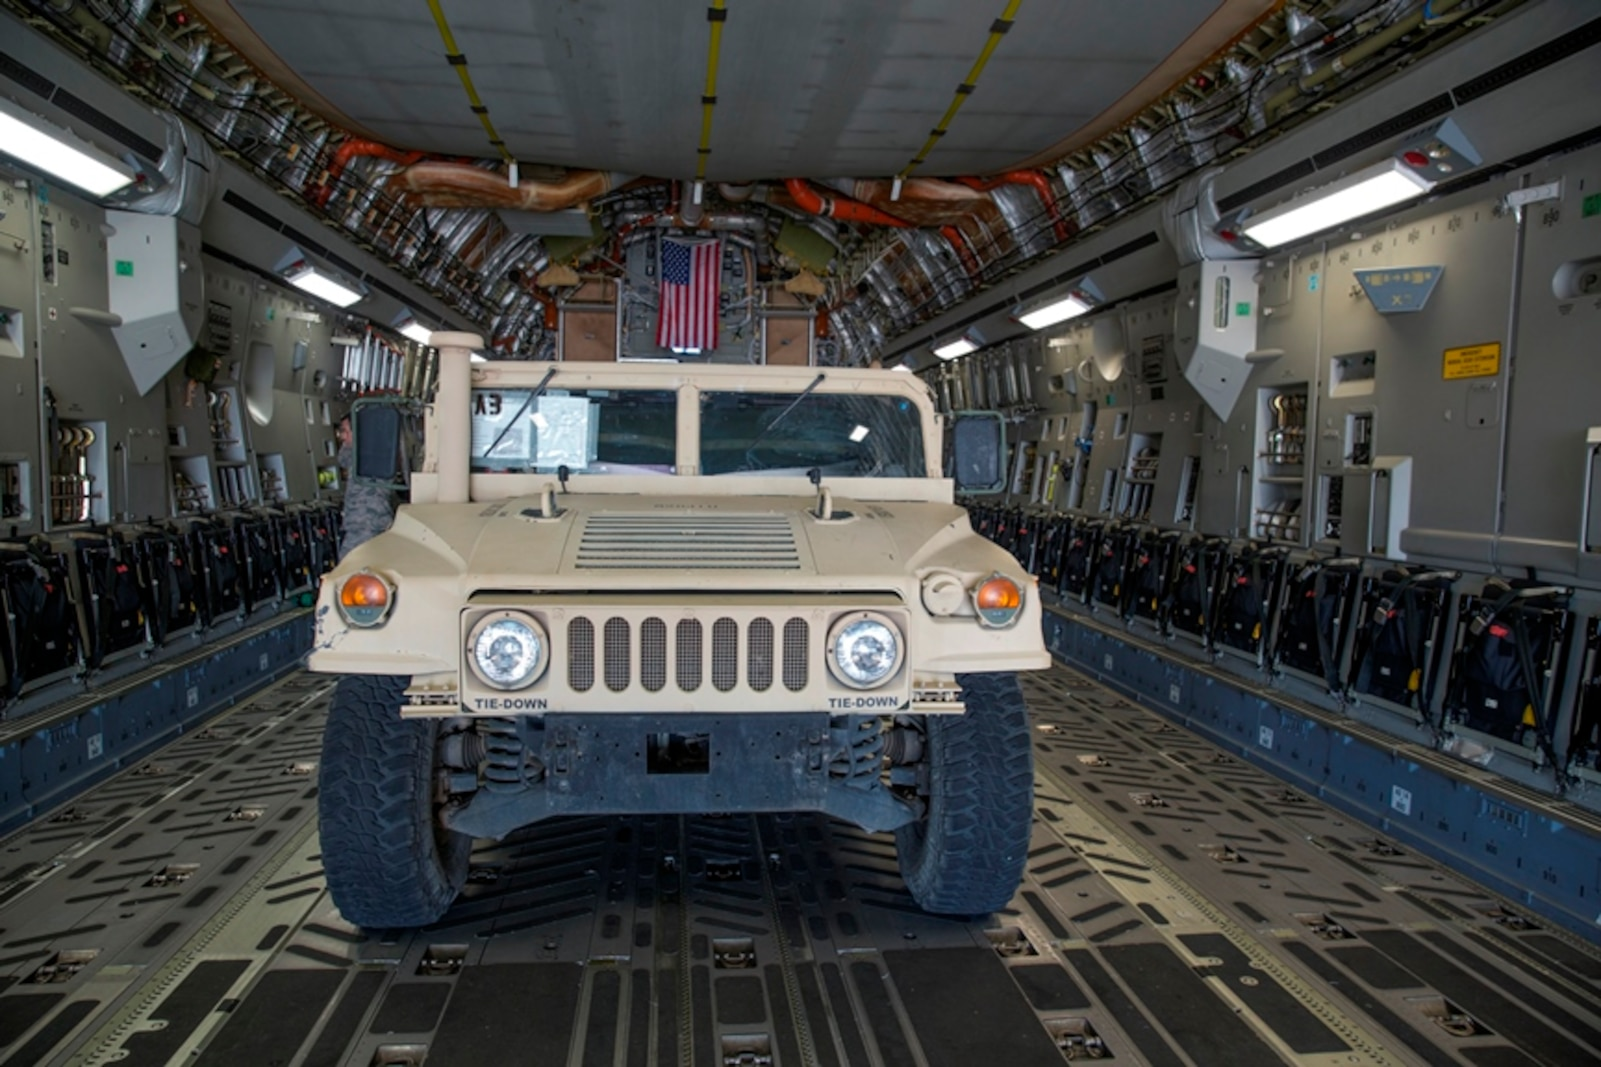 A Marine Corps High Mobility Multipurpose Wheeled Vehicle (HMMWV) is parked in the loading bay of an Air Force C-17 Globemaster III aircraft during Strategic Mobility Exercise on March Air Force Reserve Base, Calif., March 12, 2017. STRATMOBEX is a training exercise conducted by the 1st Marine Logistics Group in order to maintain readiness and sharpen skills needed to rapidly deploy personnel and equipment on a large scale.